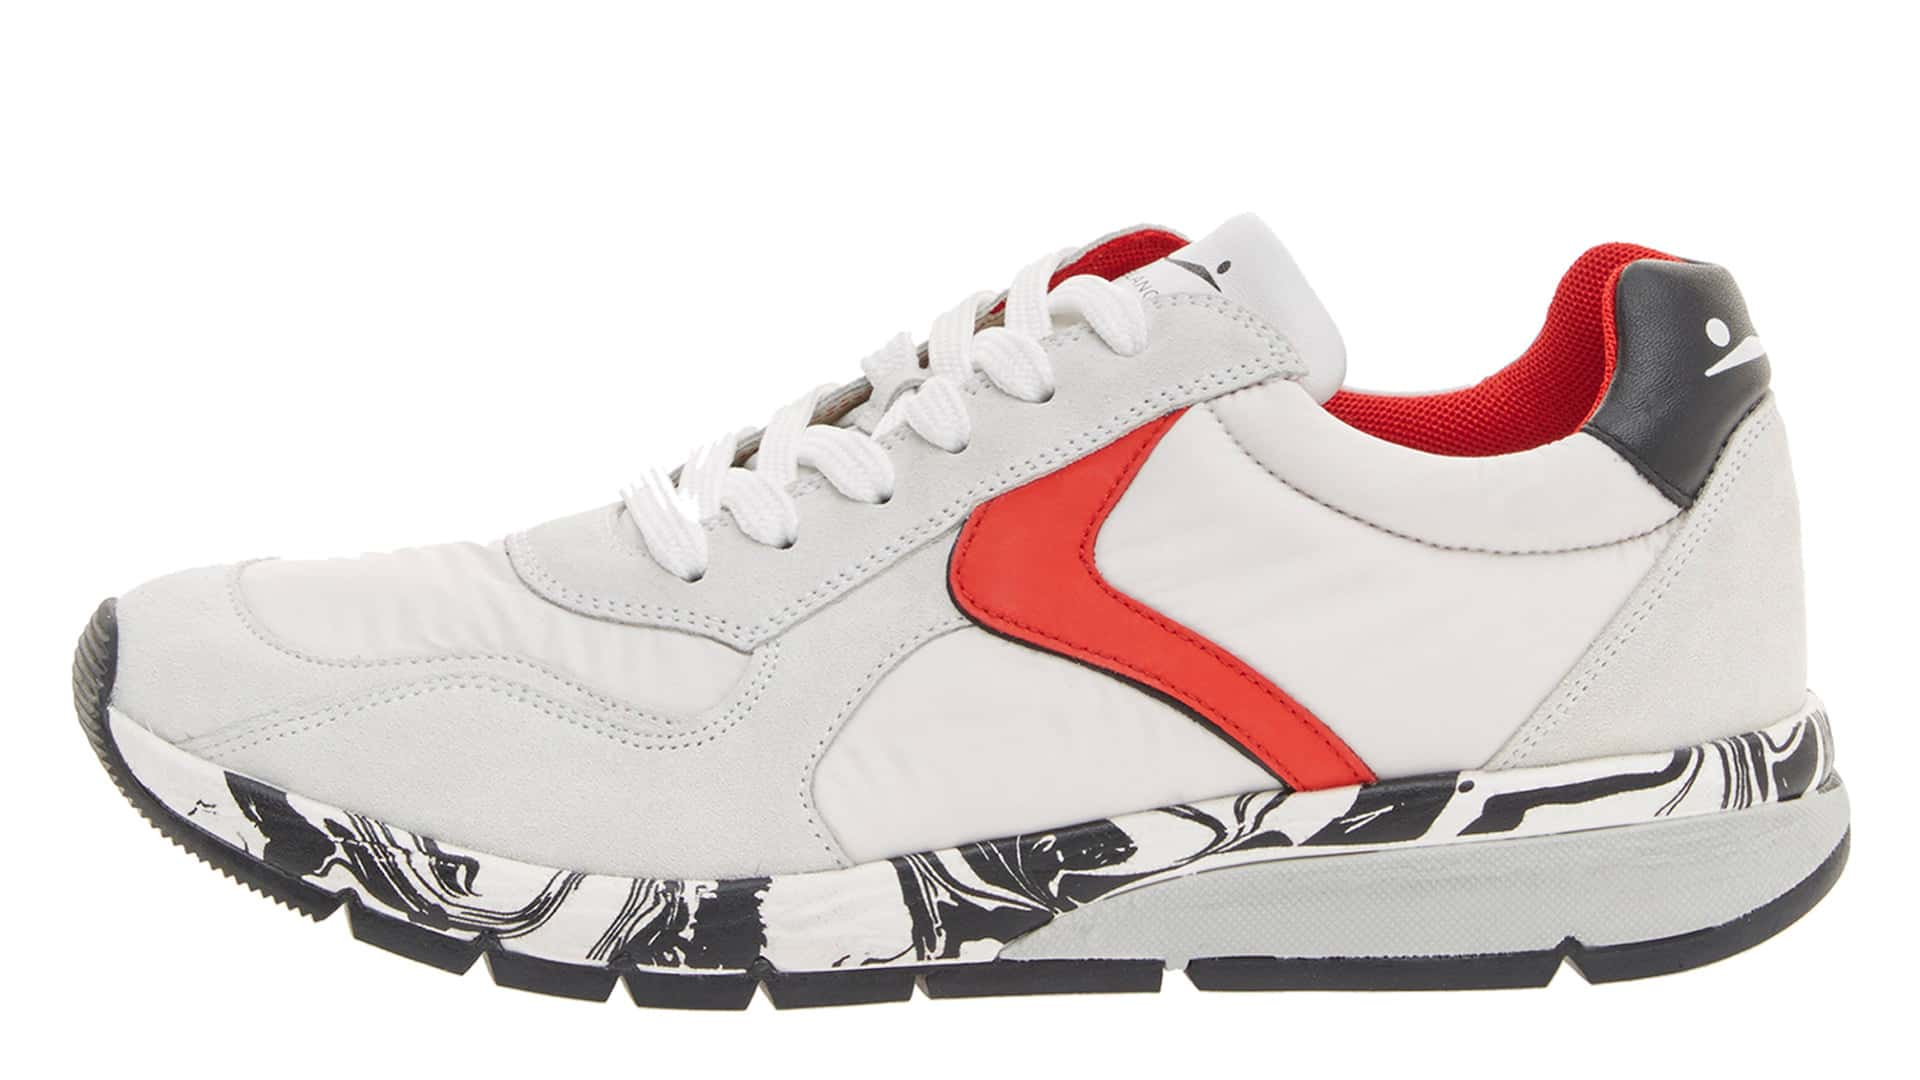 LENNY - SNEAKERS IN PELLE - BIANCO/ROSSO